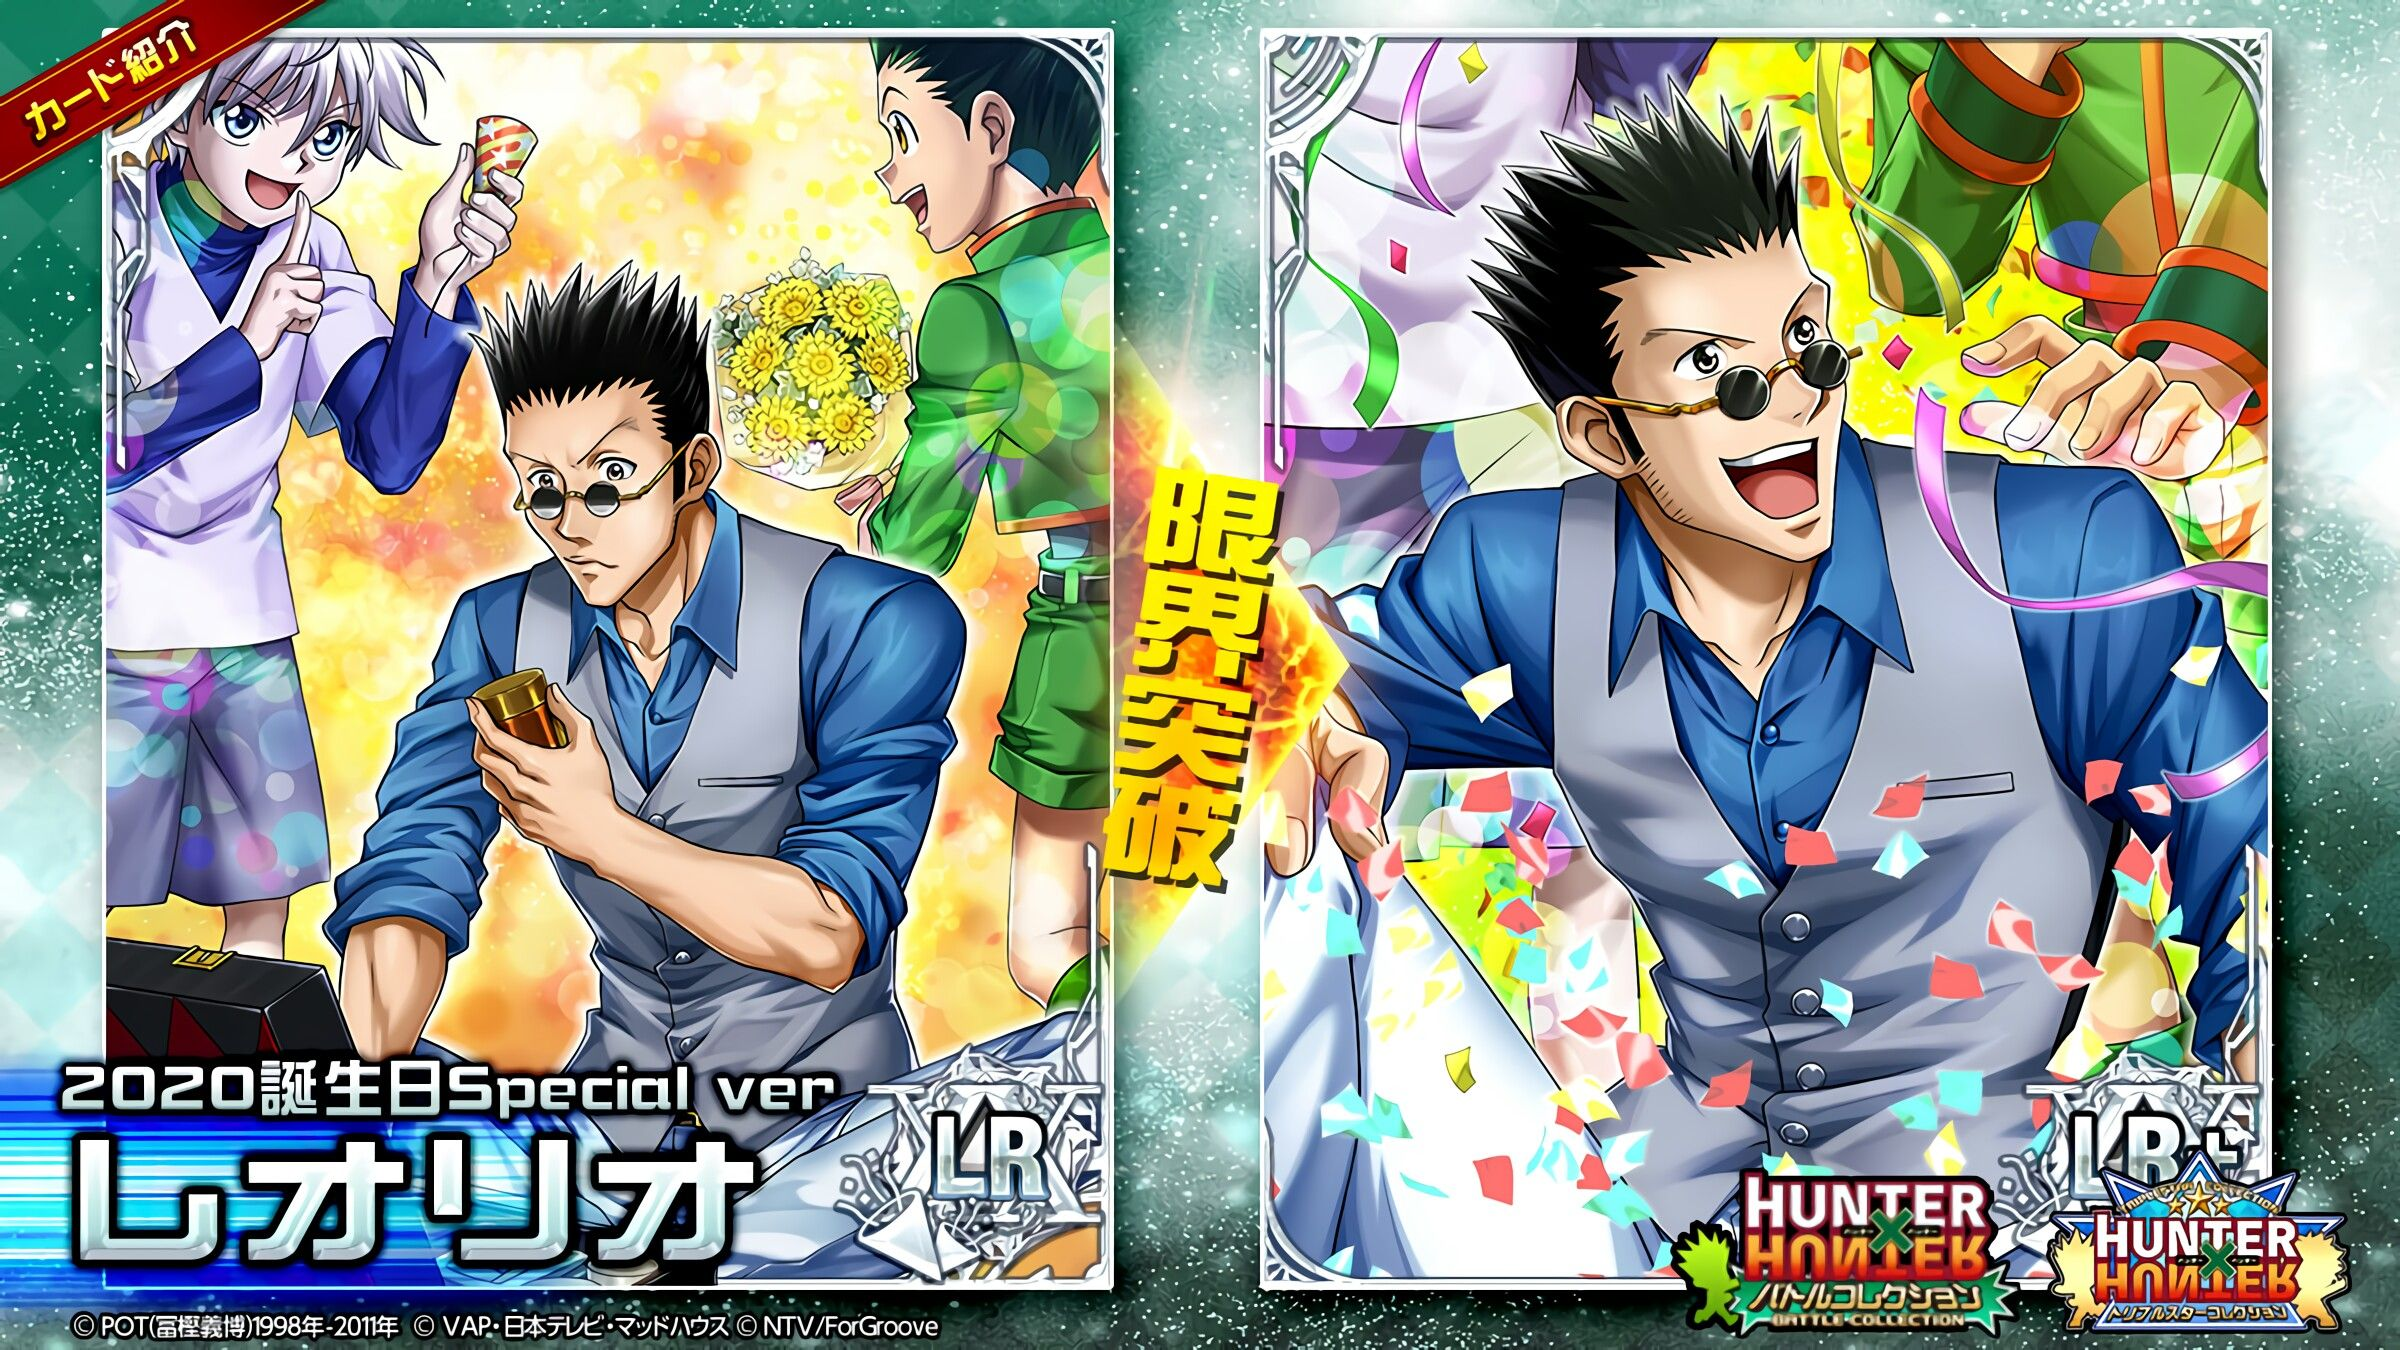 Happy Birthday Leorio 2020 Hunter X Hunter Hxh Mobage Cards レオリオ生誕祭2020 Hunter X Hunter Knight In Shining Armor Anime